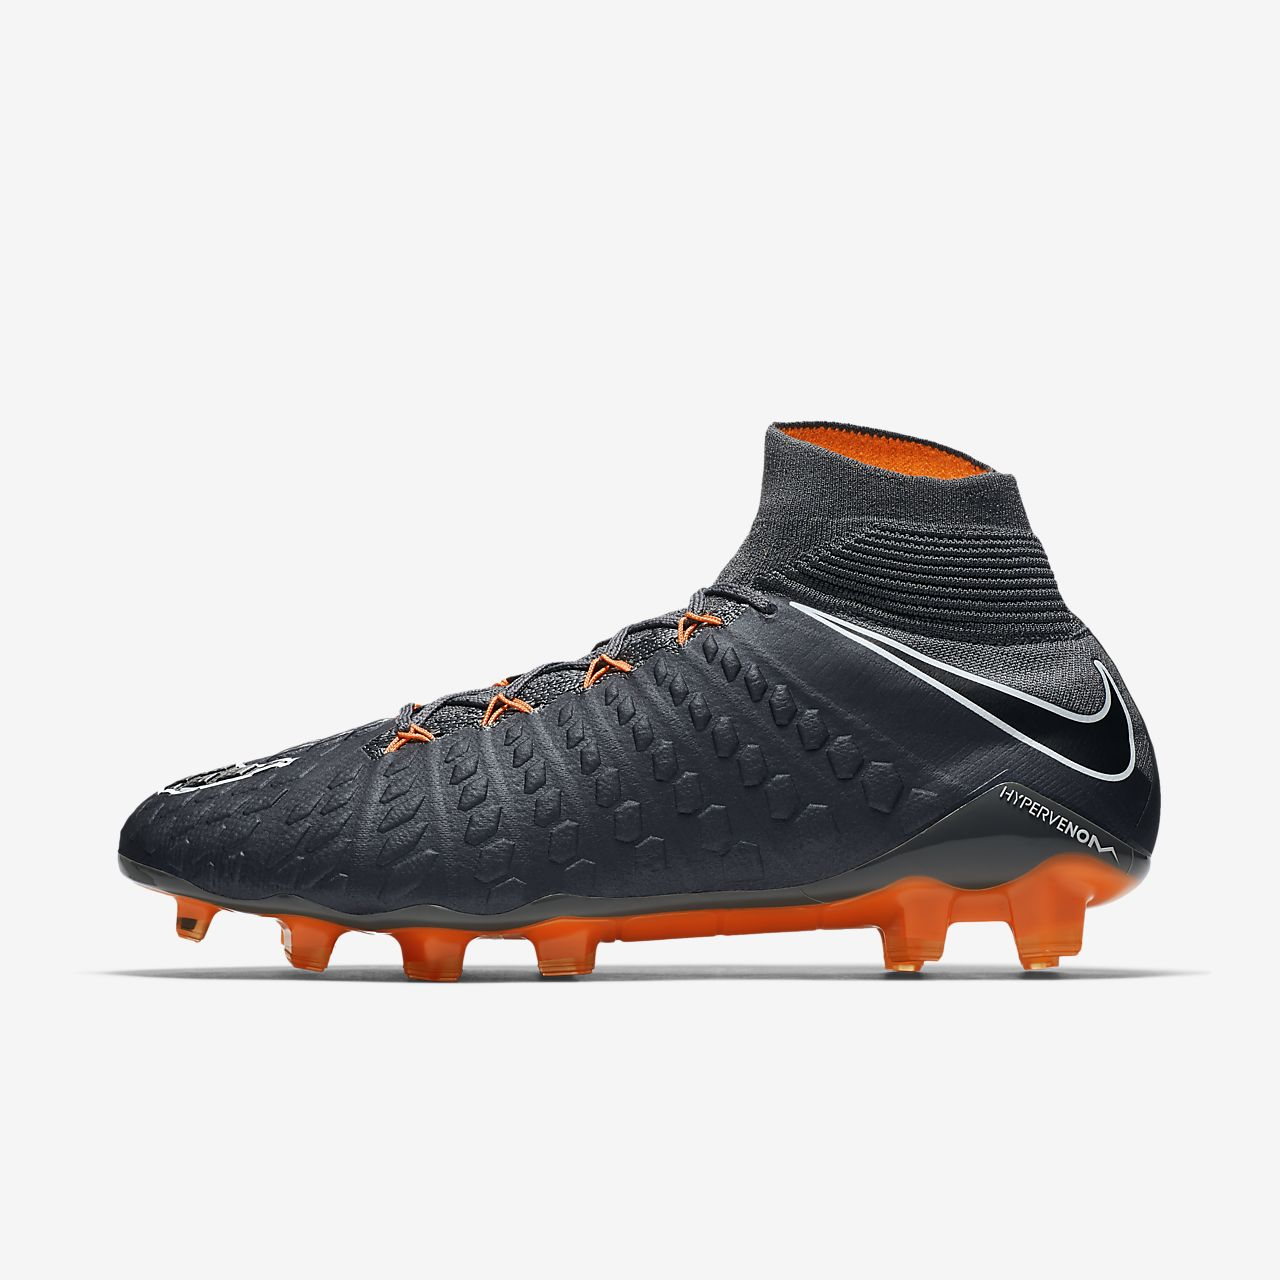 Llevando Residencia Juramento  nike hypervenom phantom 3 2015 Shop Clothing & Shoes Online